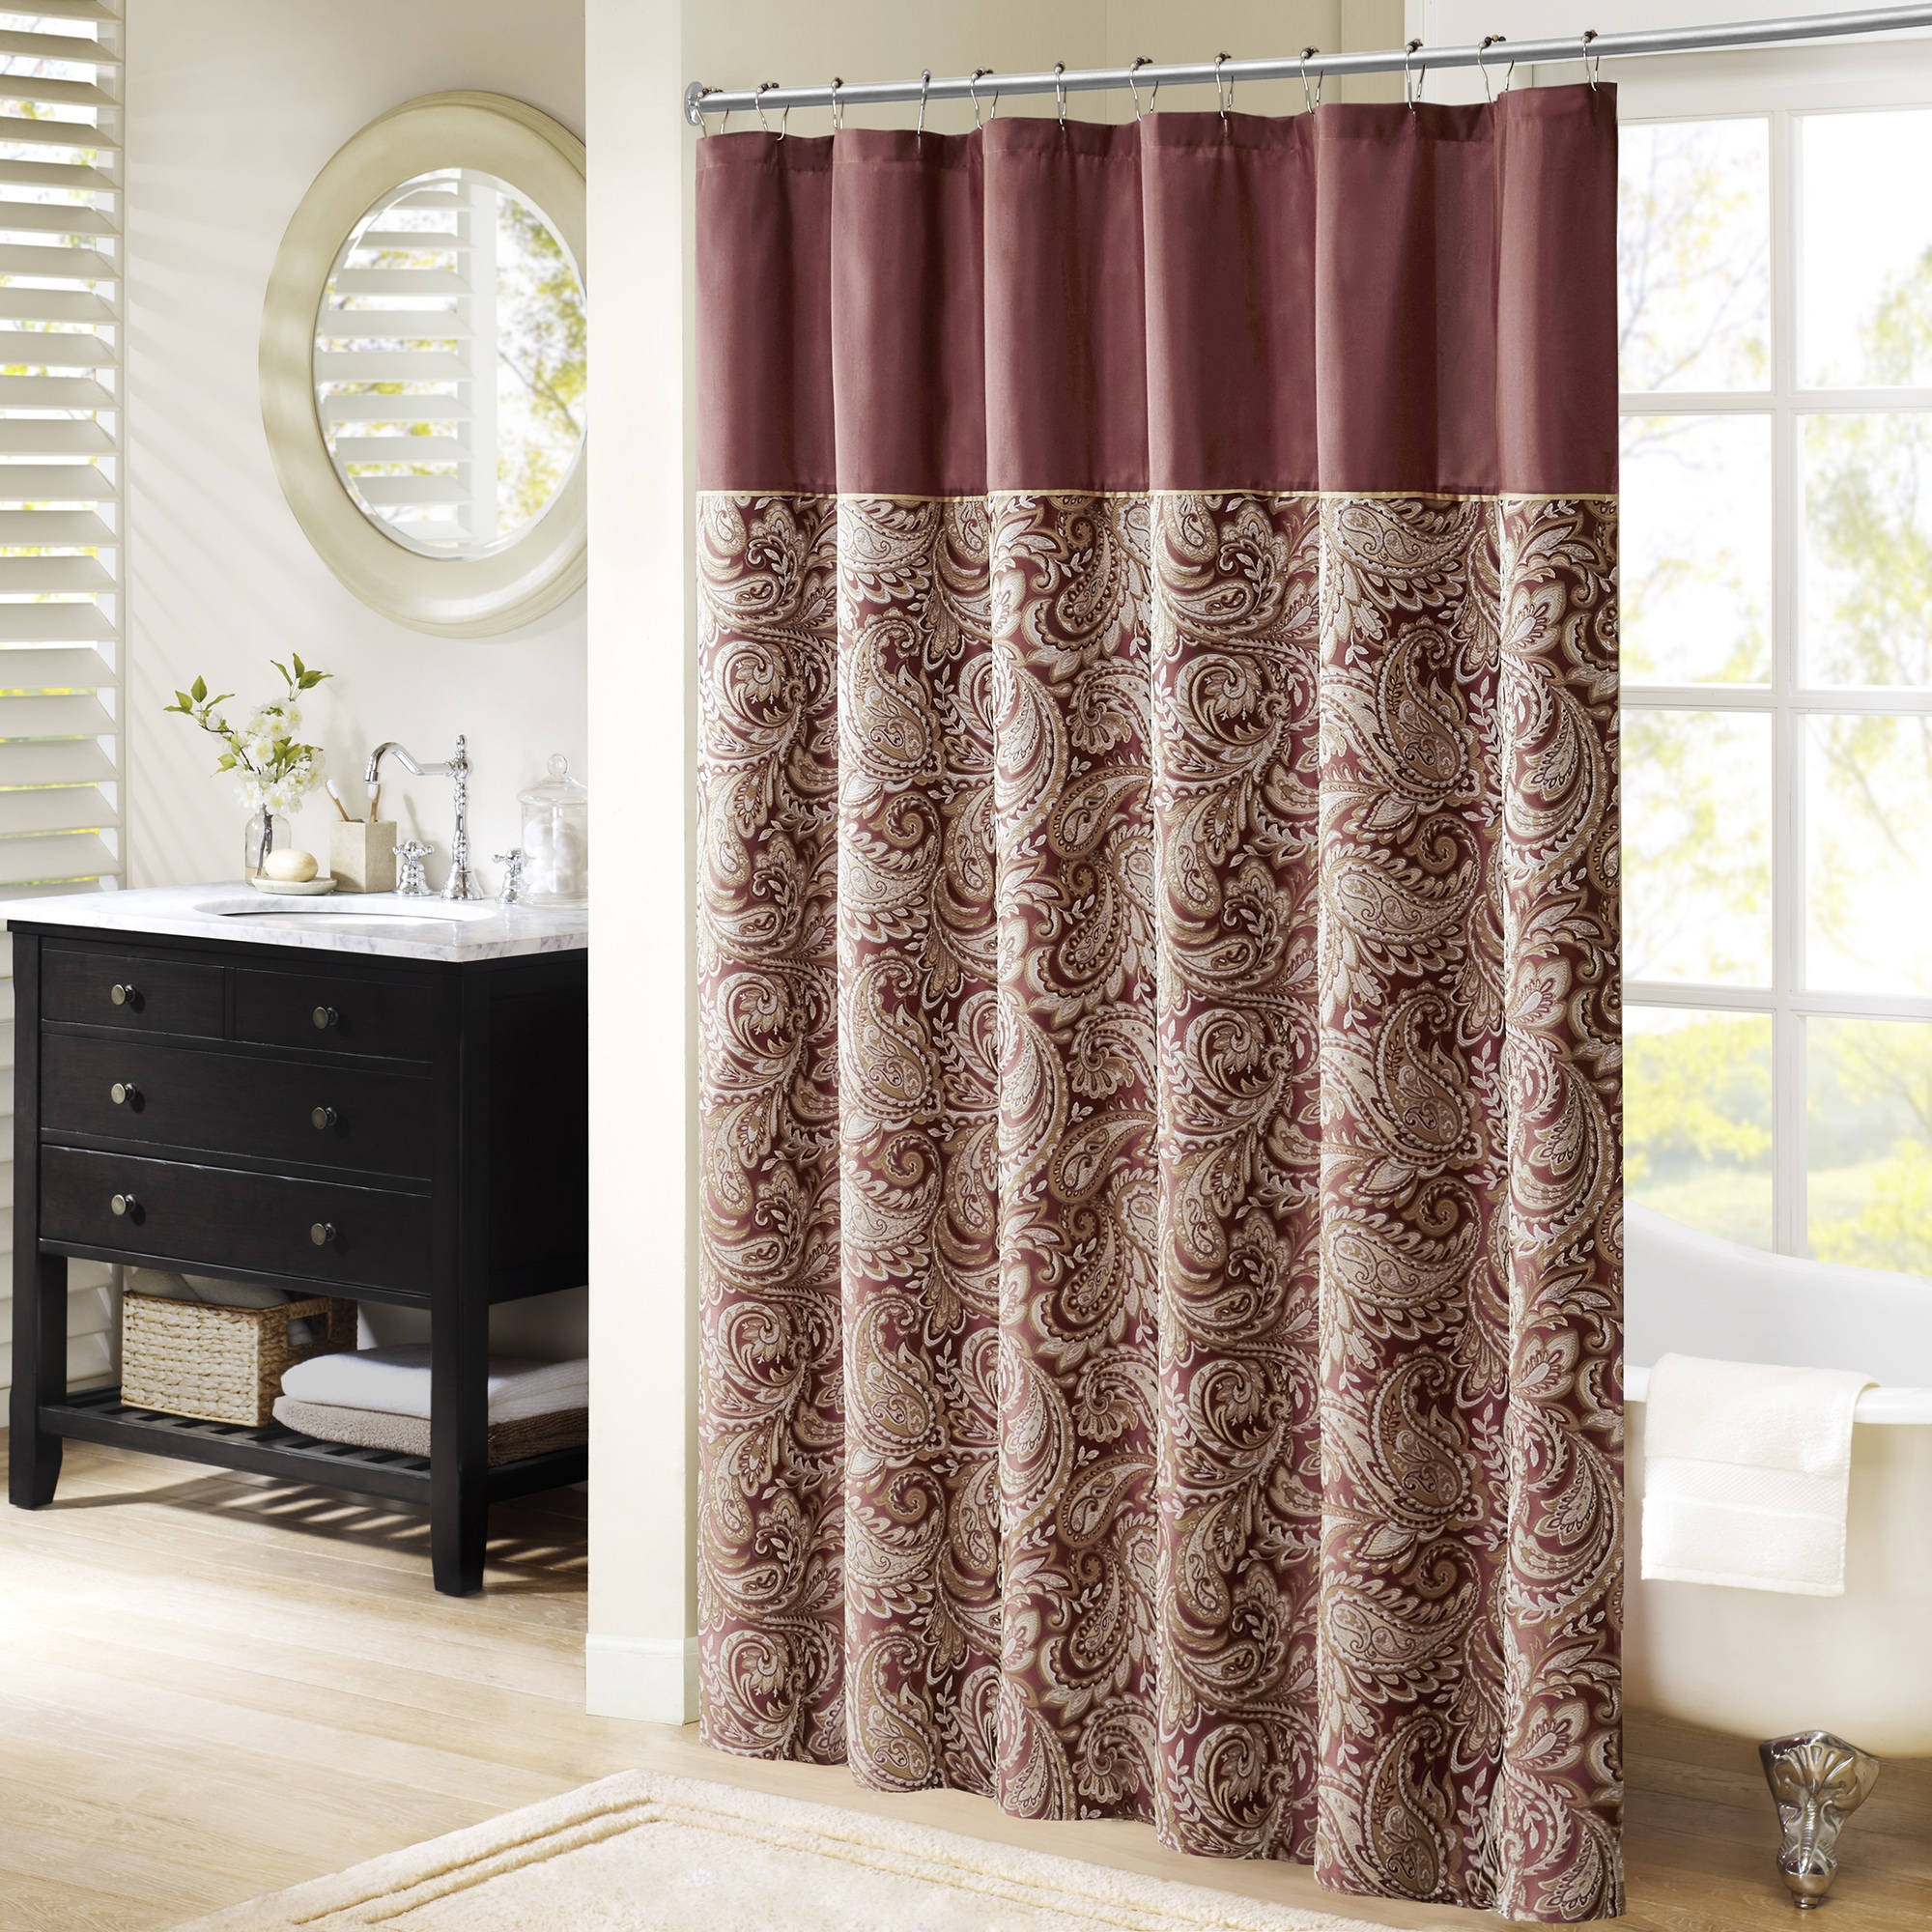 Shower Curtains Walmart Walmart Throughout Peach Colored Curtains (Image 22 of 25)